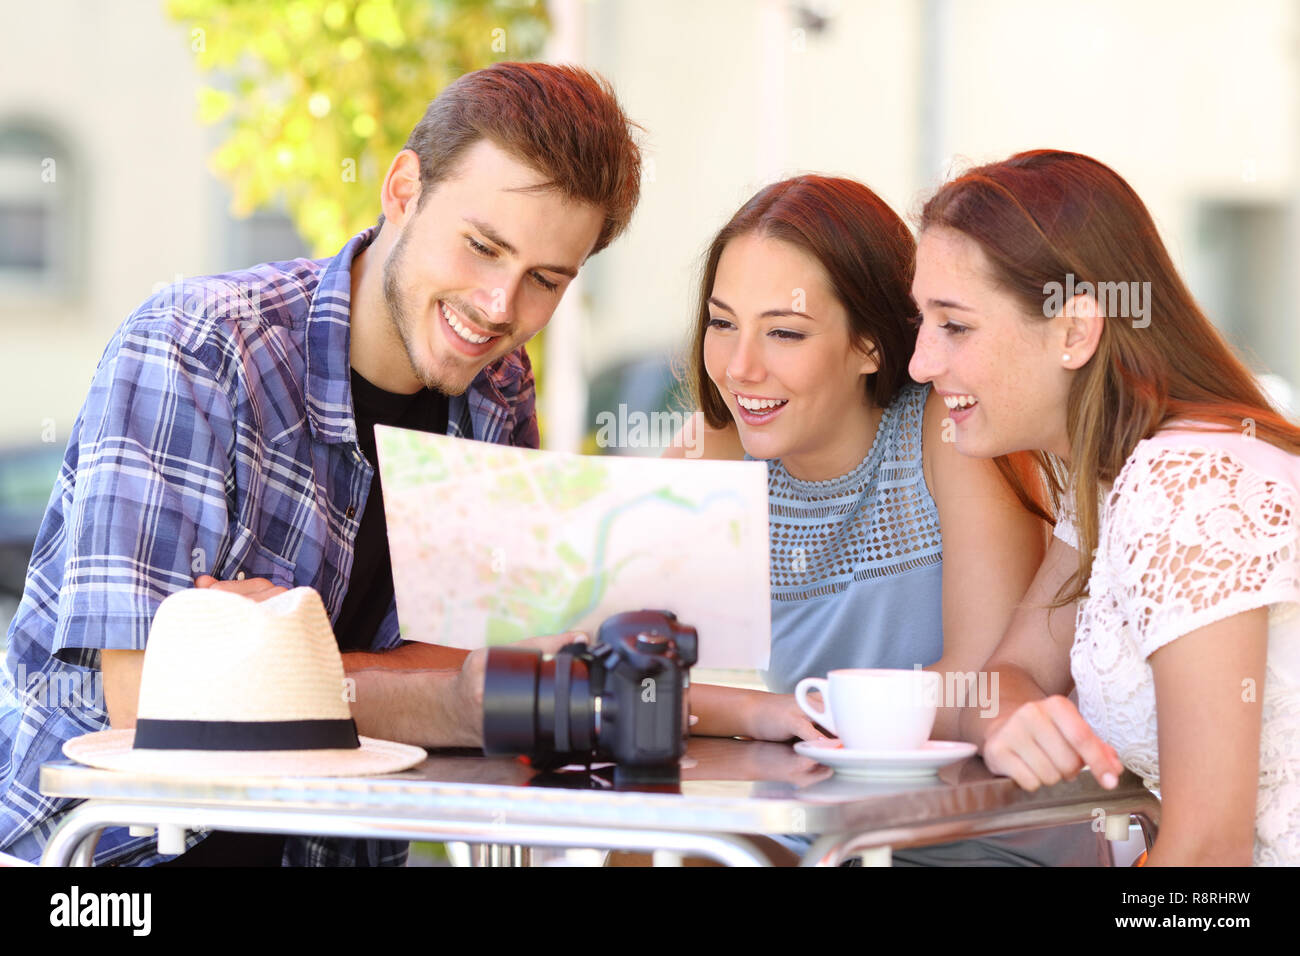 Three happy tourists planning travel consulting a paper guide in a bar terrace - Stock Image